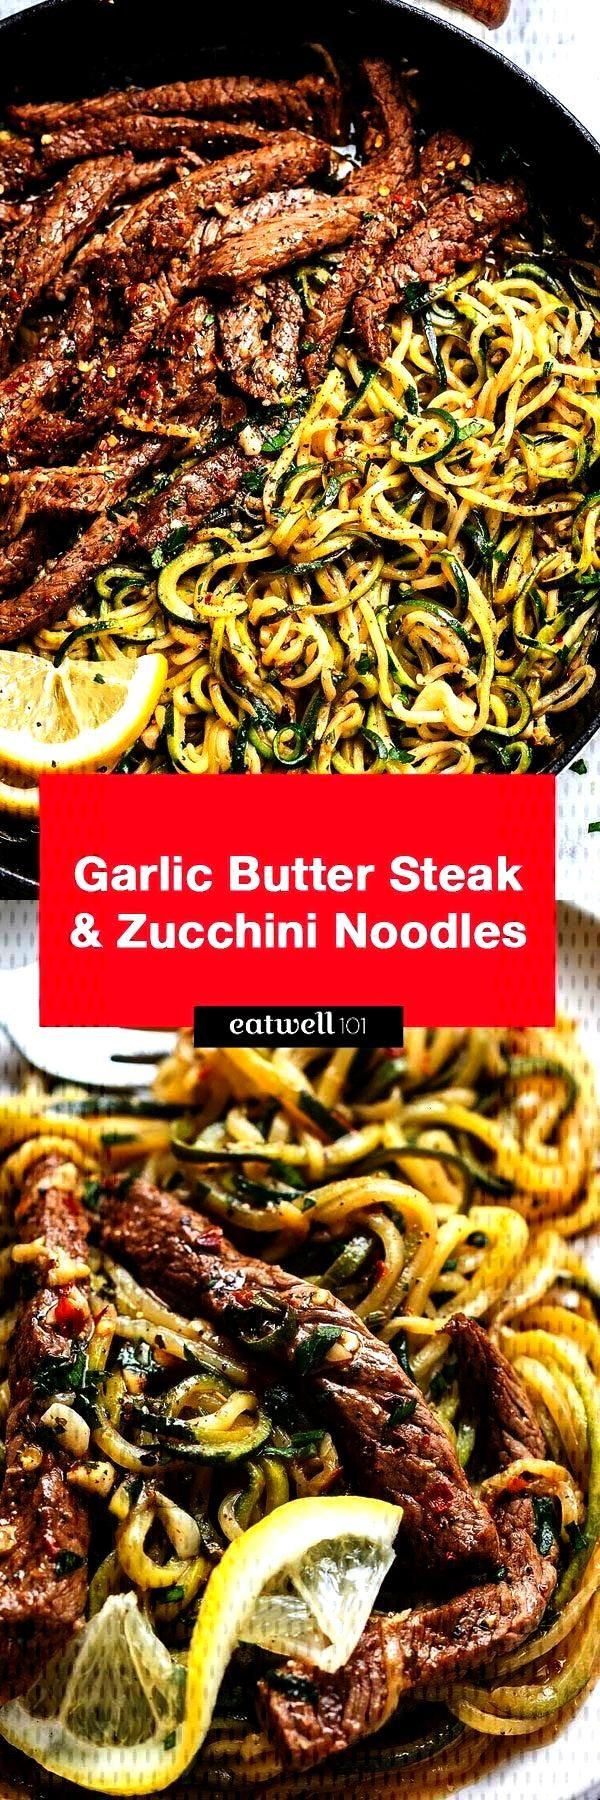 Garlic Butter Steak with Zucchini Noodles   Delicious juicy marinated steak and zucchini noodleGarlic Butter Steak with Zucchini Noodles   Delicious juicy marinated steak...